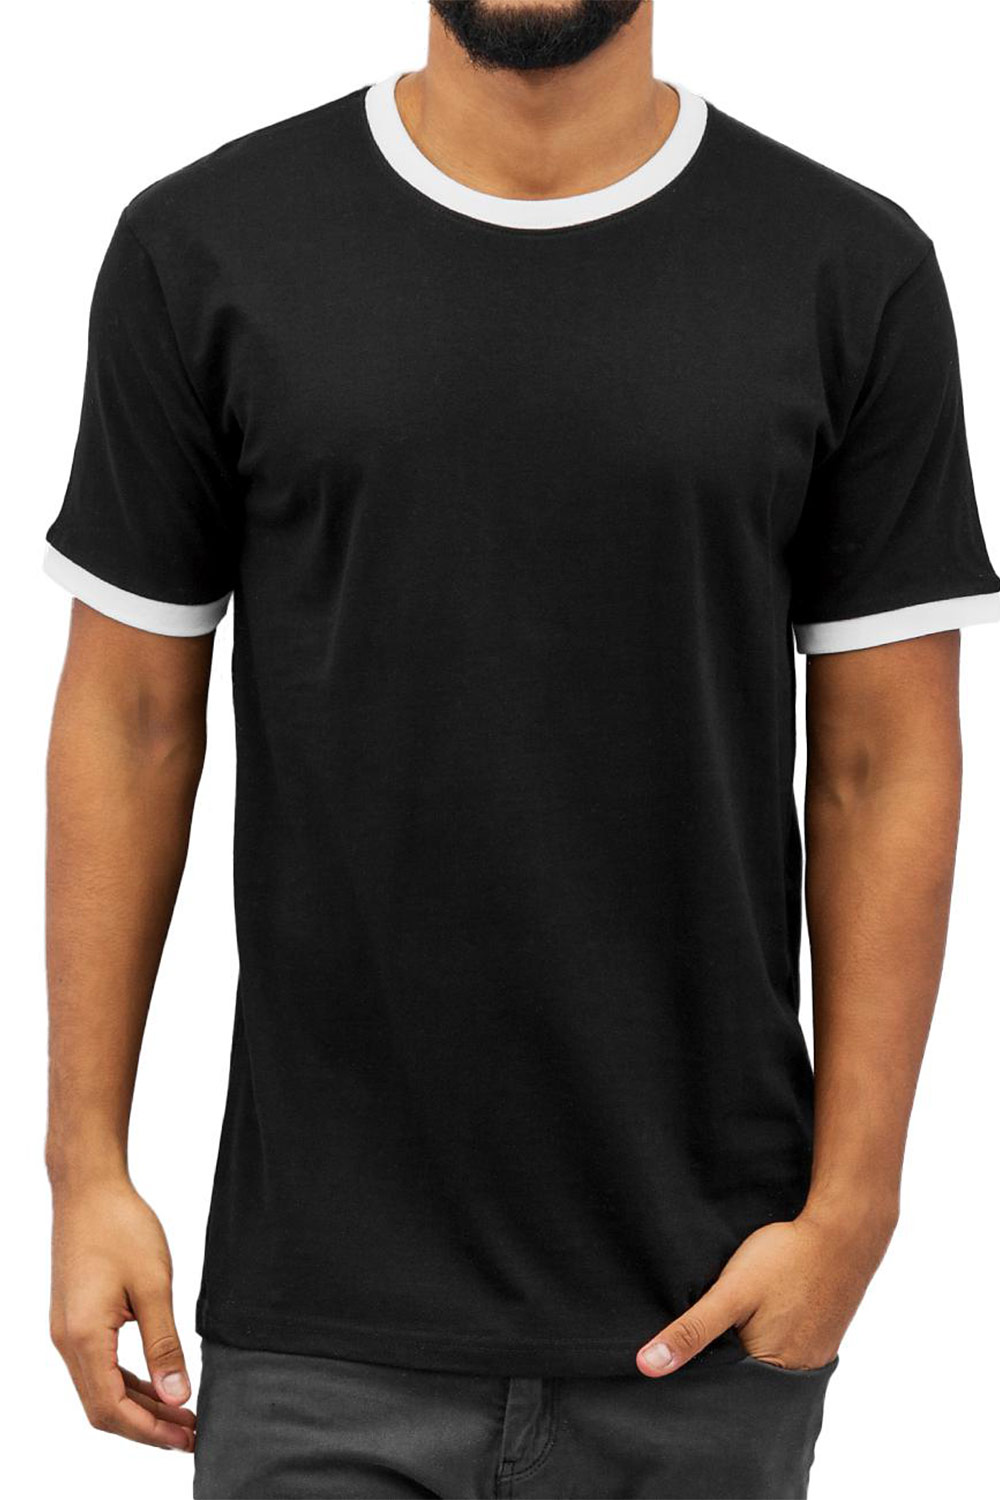 CYPRIME Valletta T-Shirt Black auf oboy.de